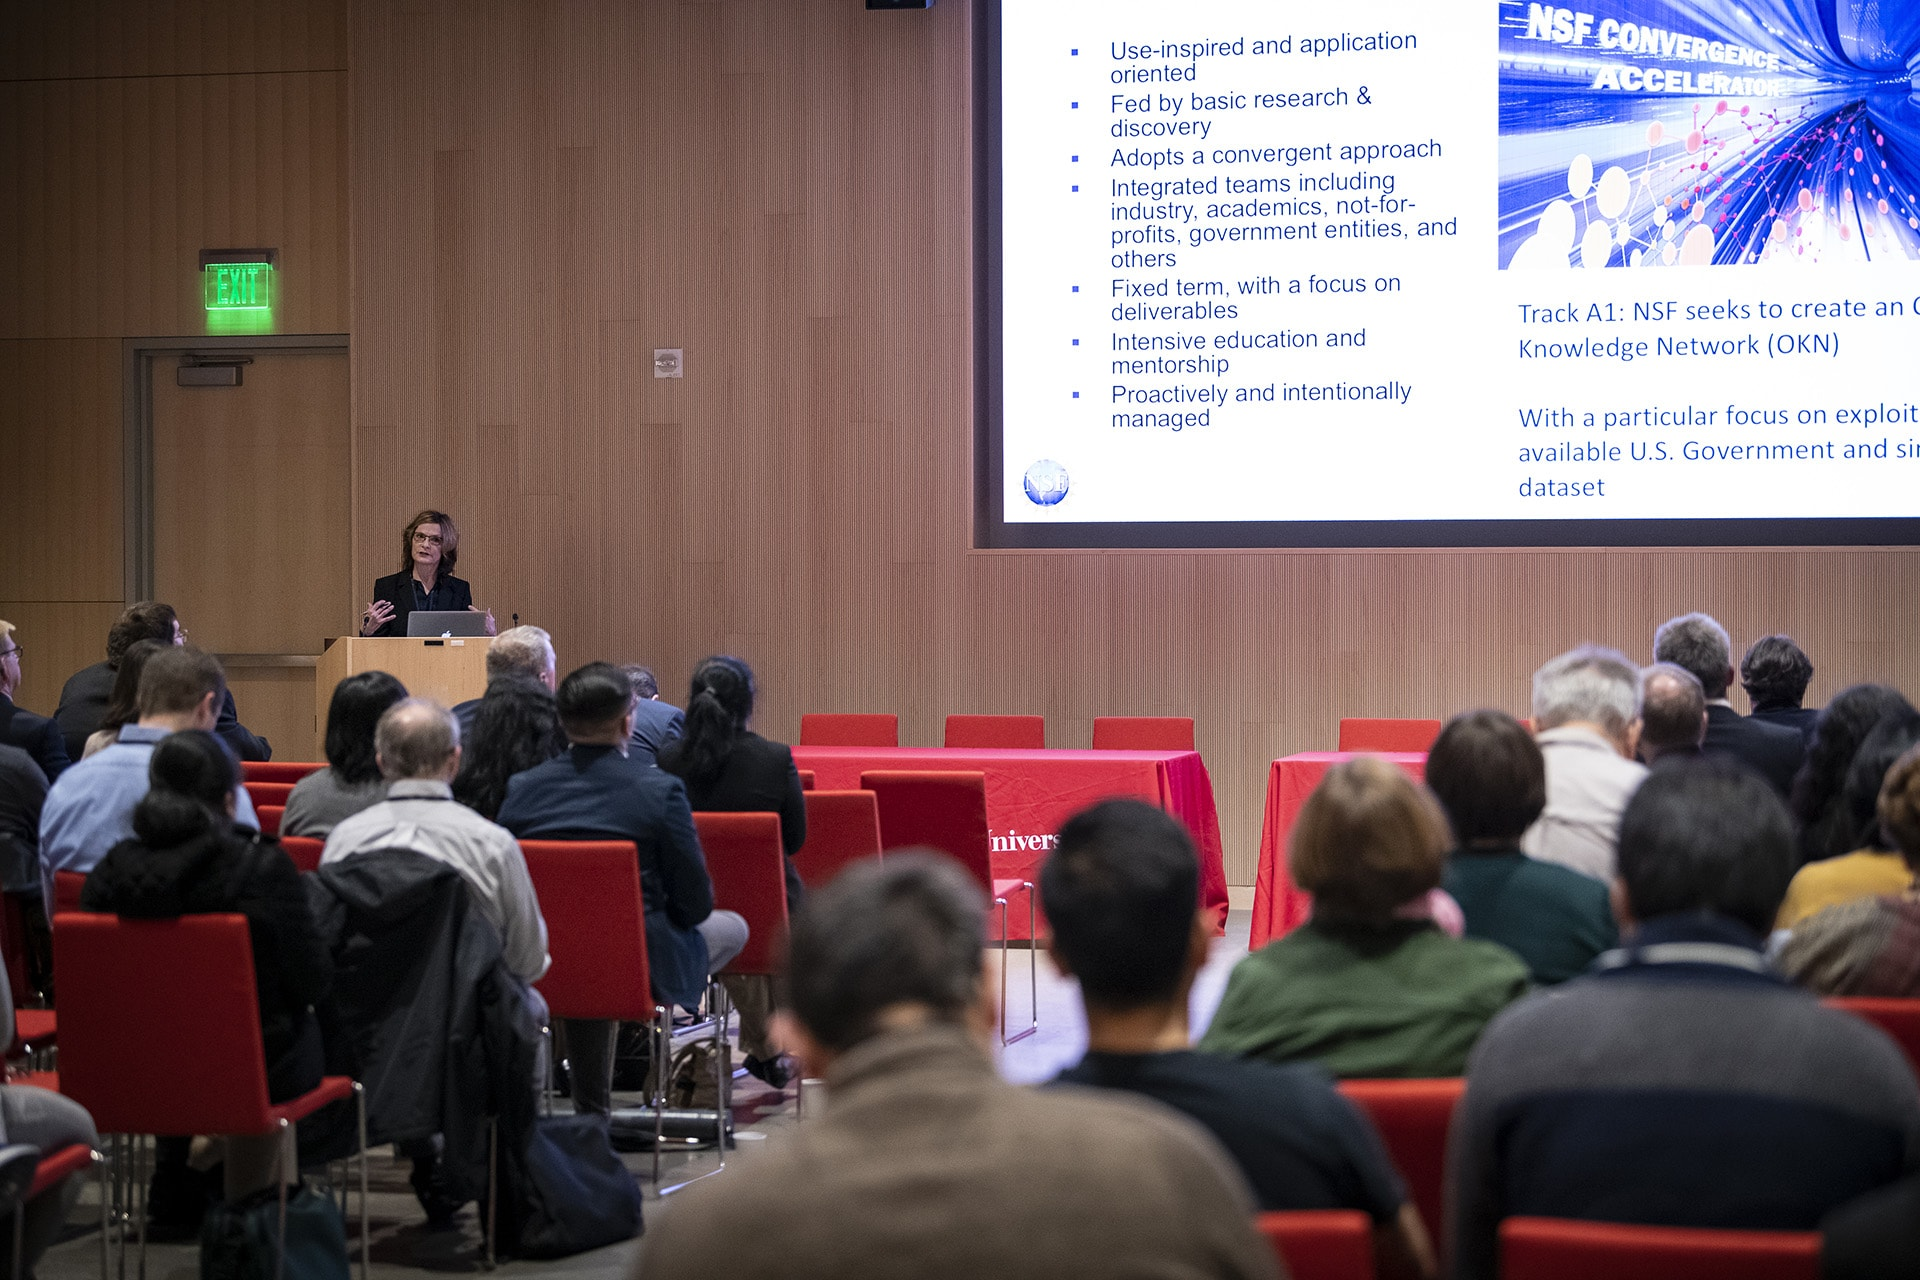 Libraries Convene Community of Scholars to Tackle Data Challenges